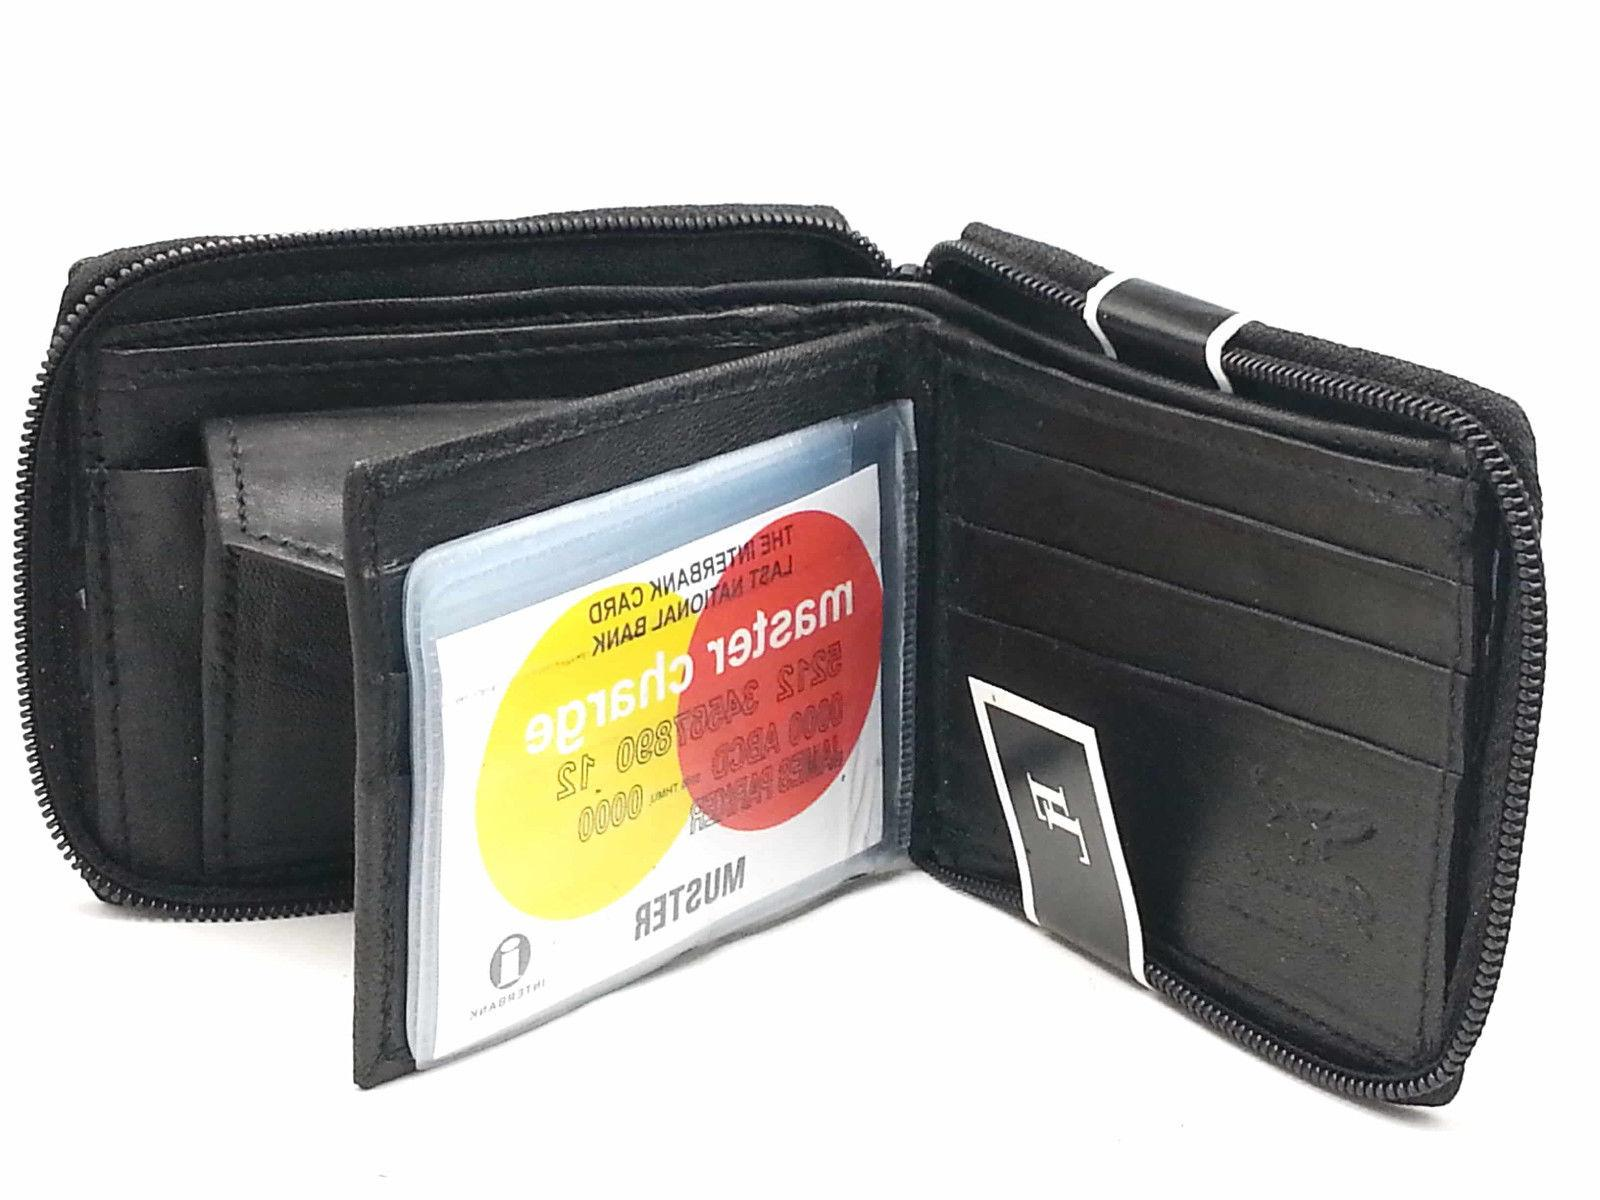 New Zip Secure Zipper Around Wallet Black Key